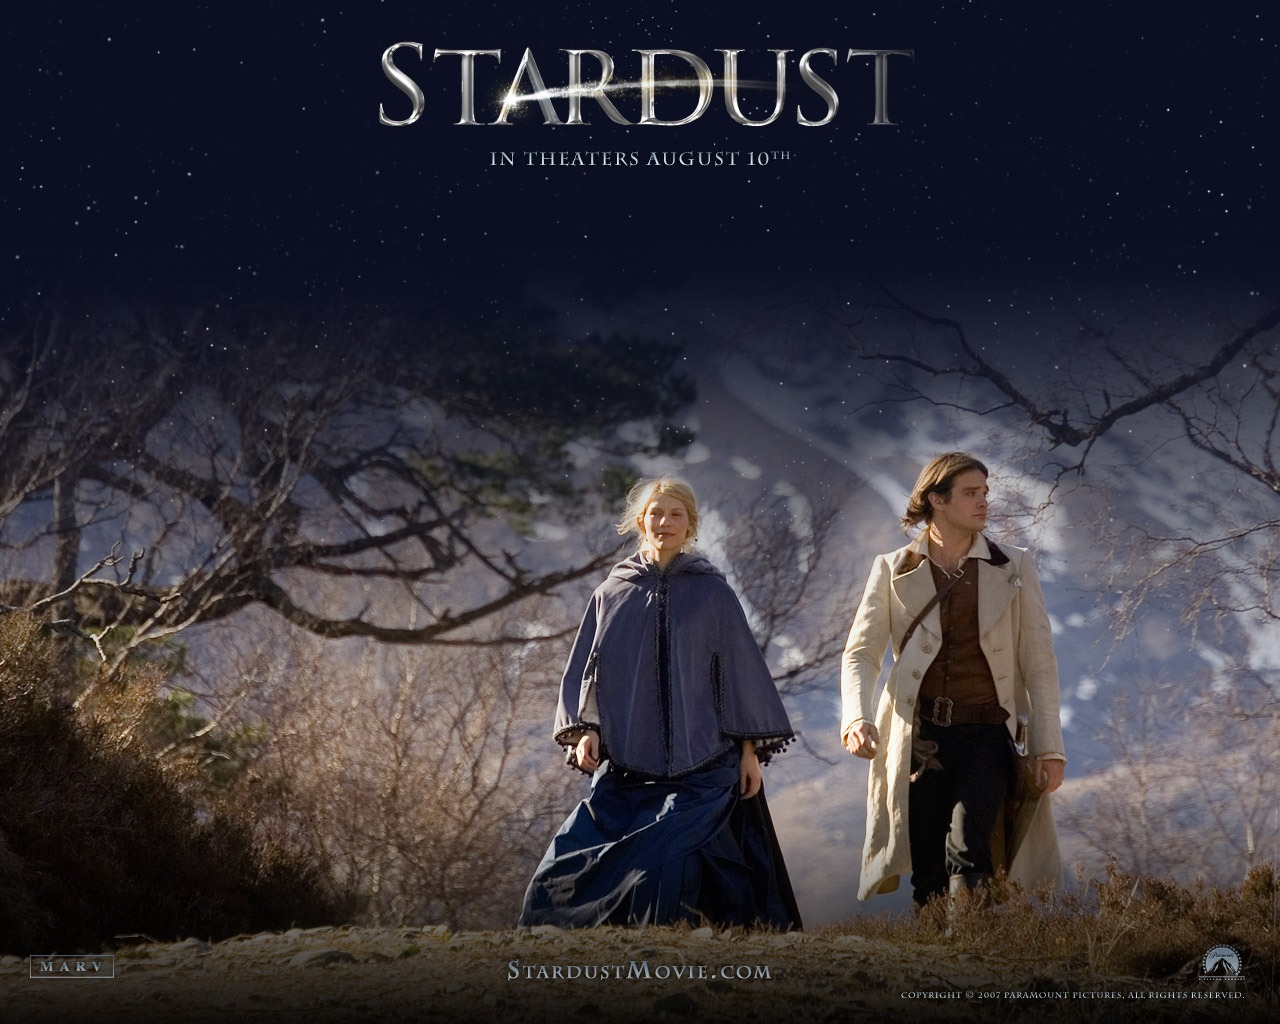 Stardust Primus Wallpaper Stardust Movies Wallpapers in jpg format